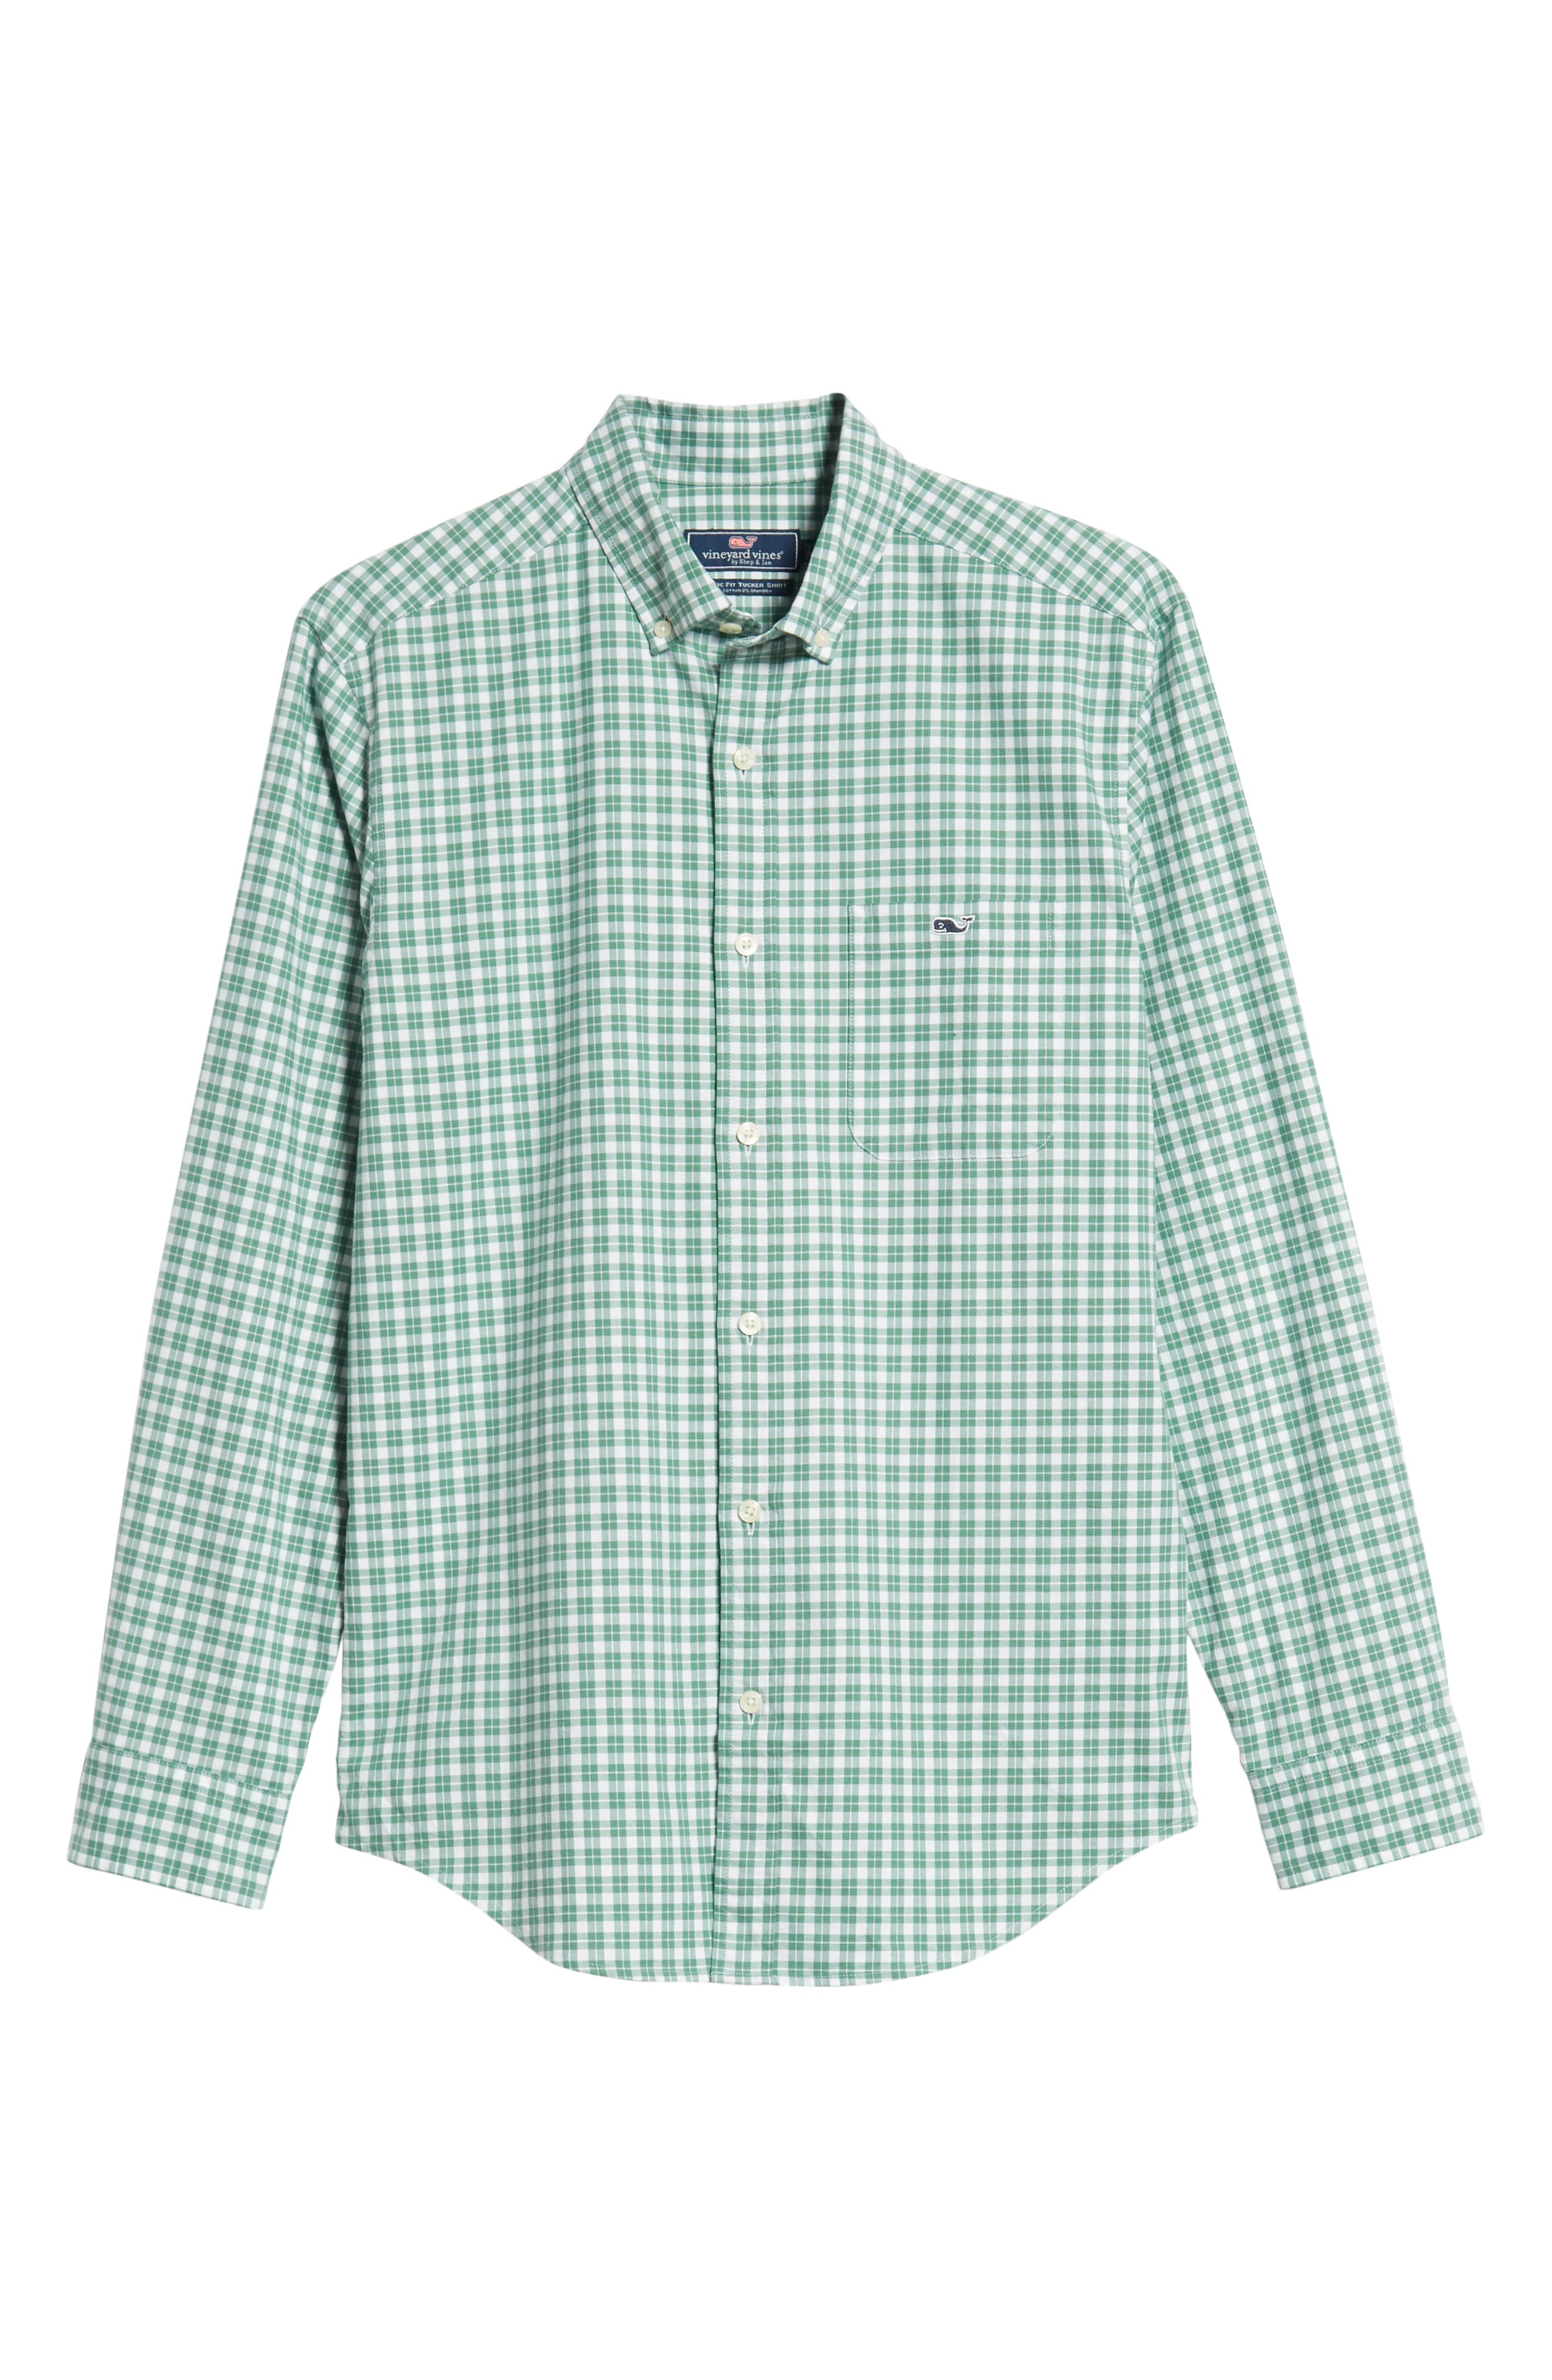 Eagle Hill Classic Fit Check Sport Shirt,                             Alternate thumbnail 5, color,                             STARBOARD GREEN